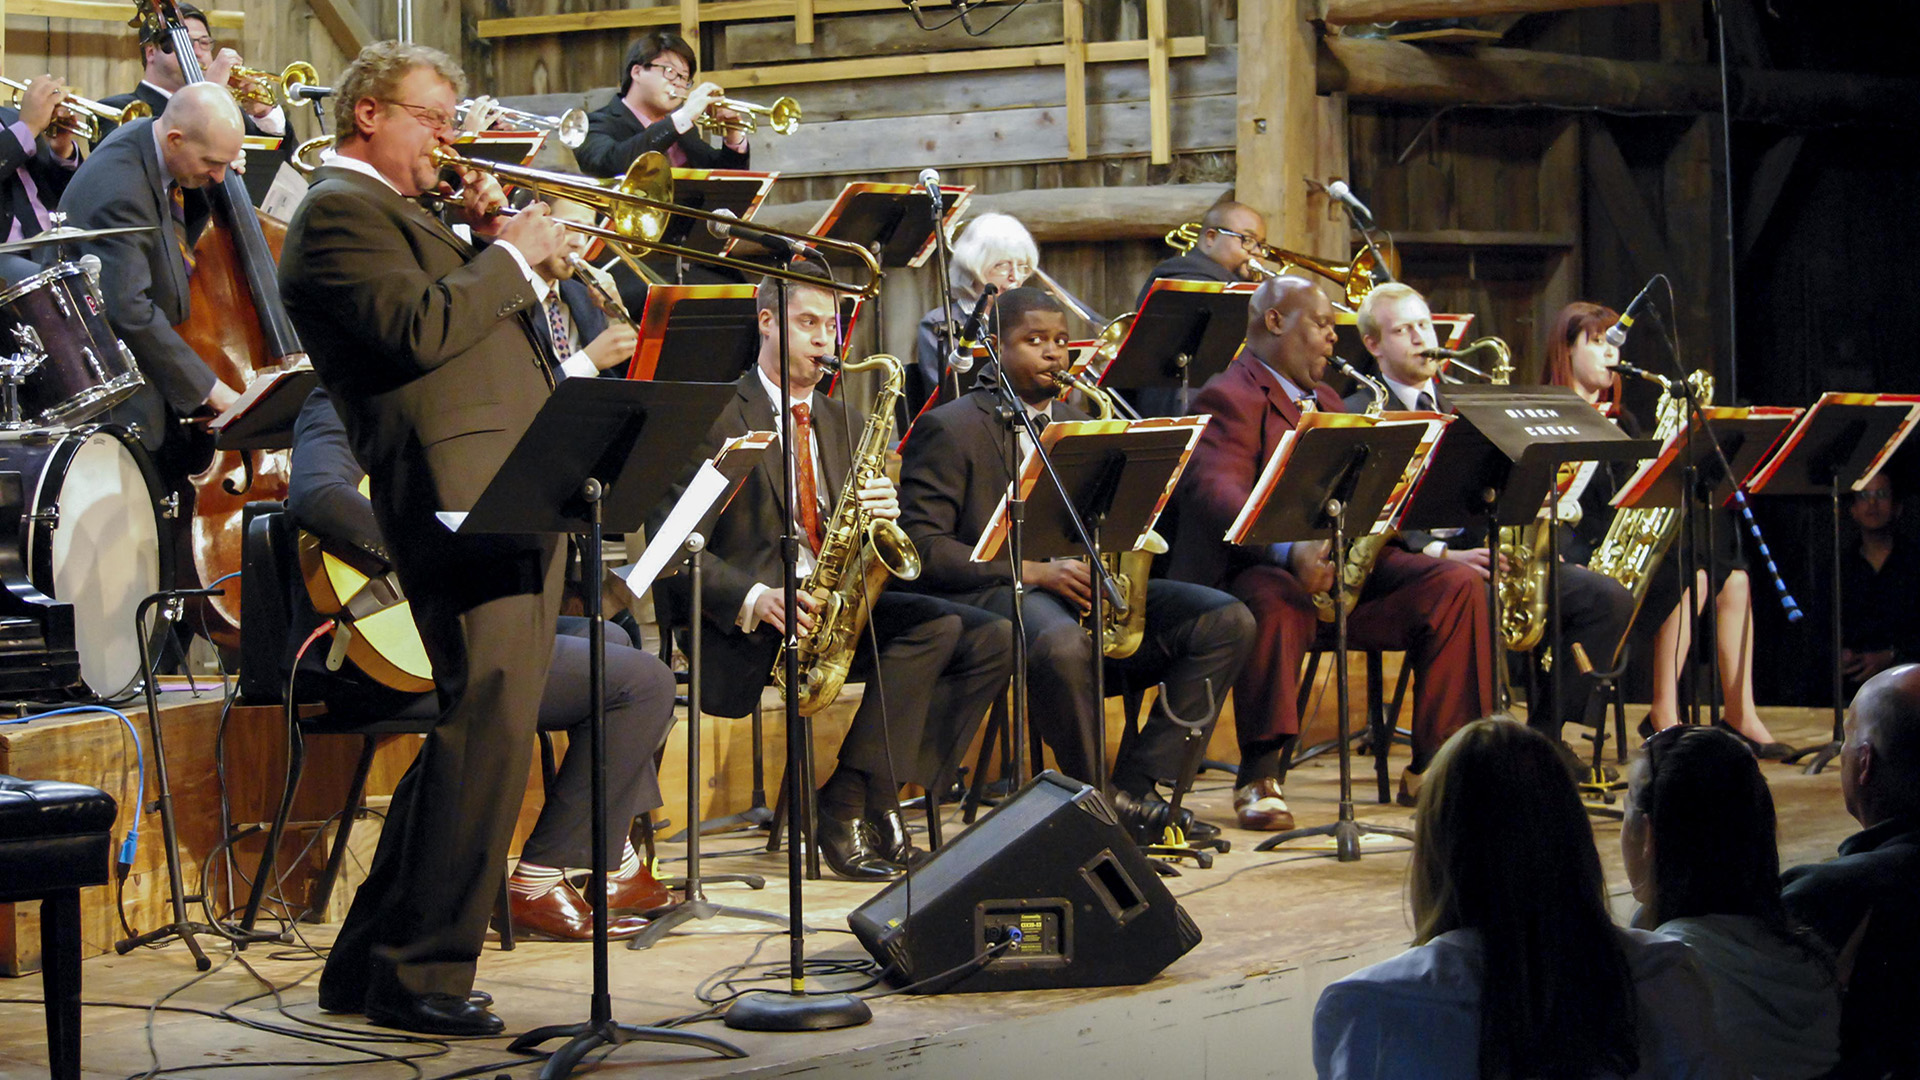 Birch Creek Music Performance Center